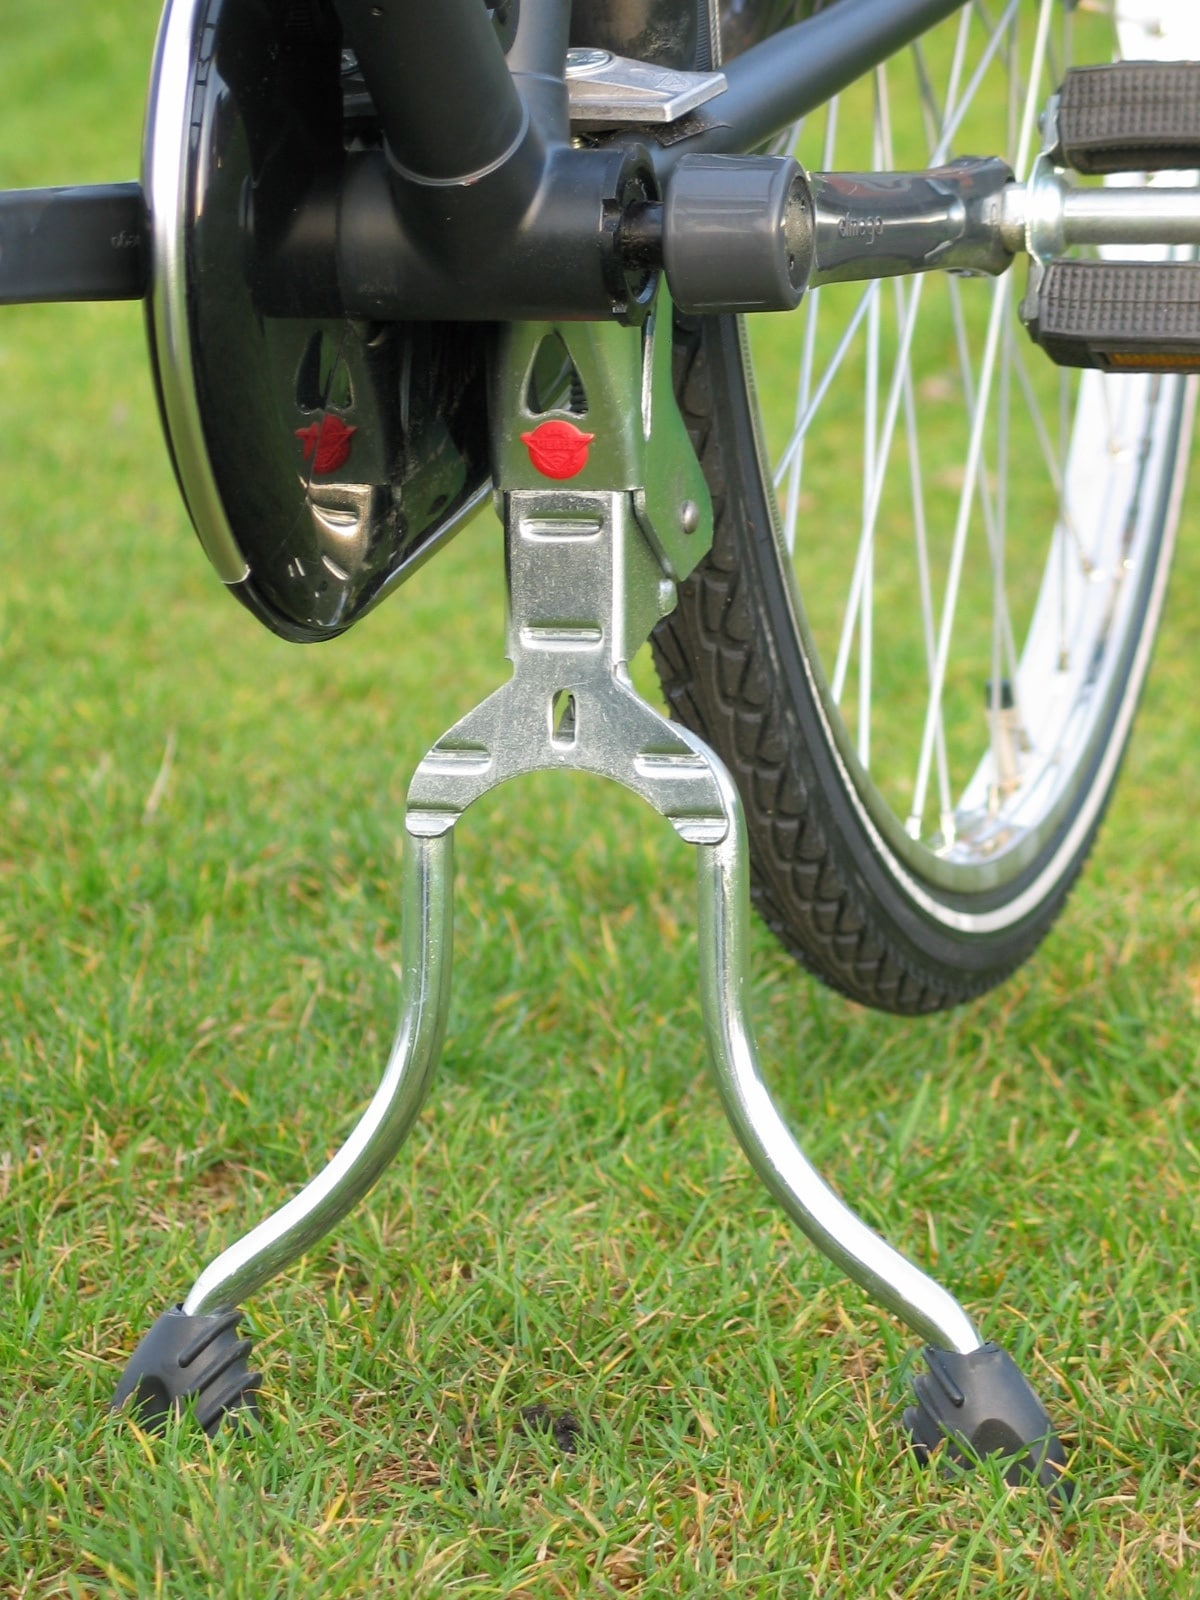 The older, galvanized version of the Hebie 2-leg centerstand